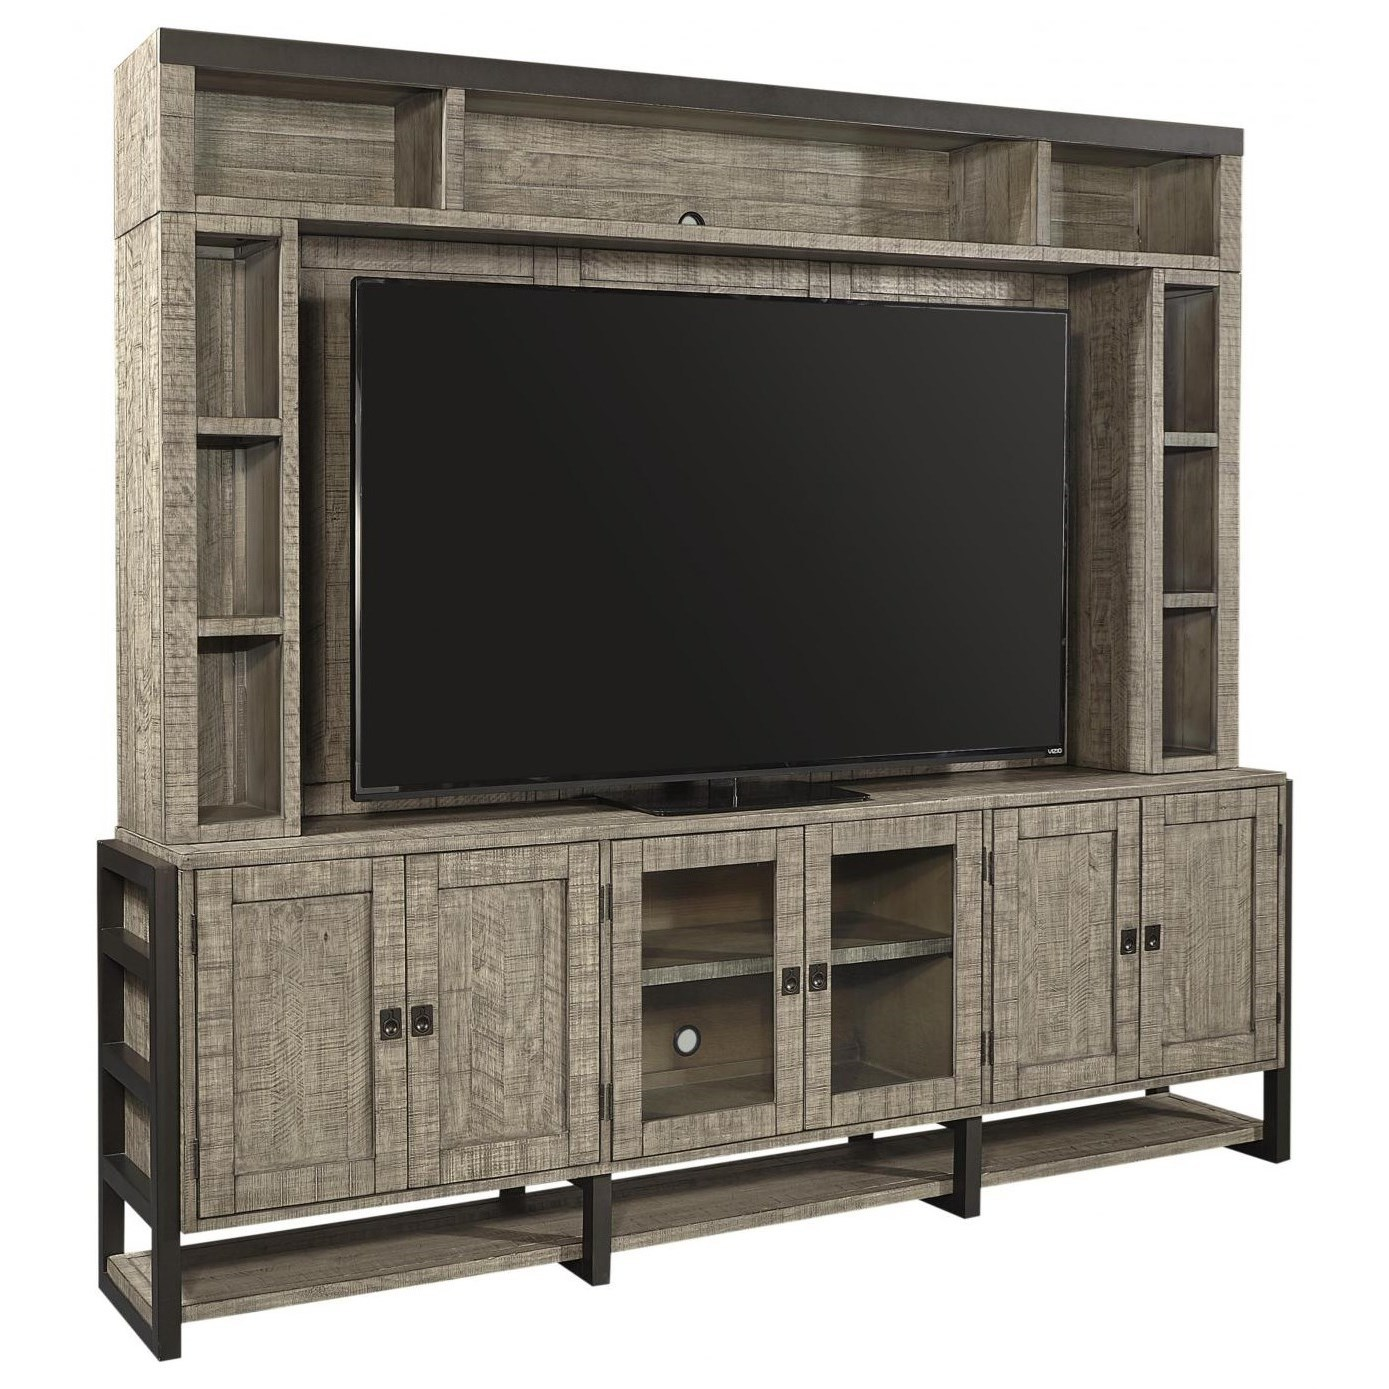 Grayson TV Stand with Hutch by Aspenhome at Walker's Furniture